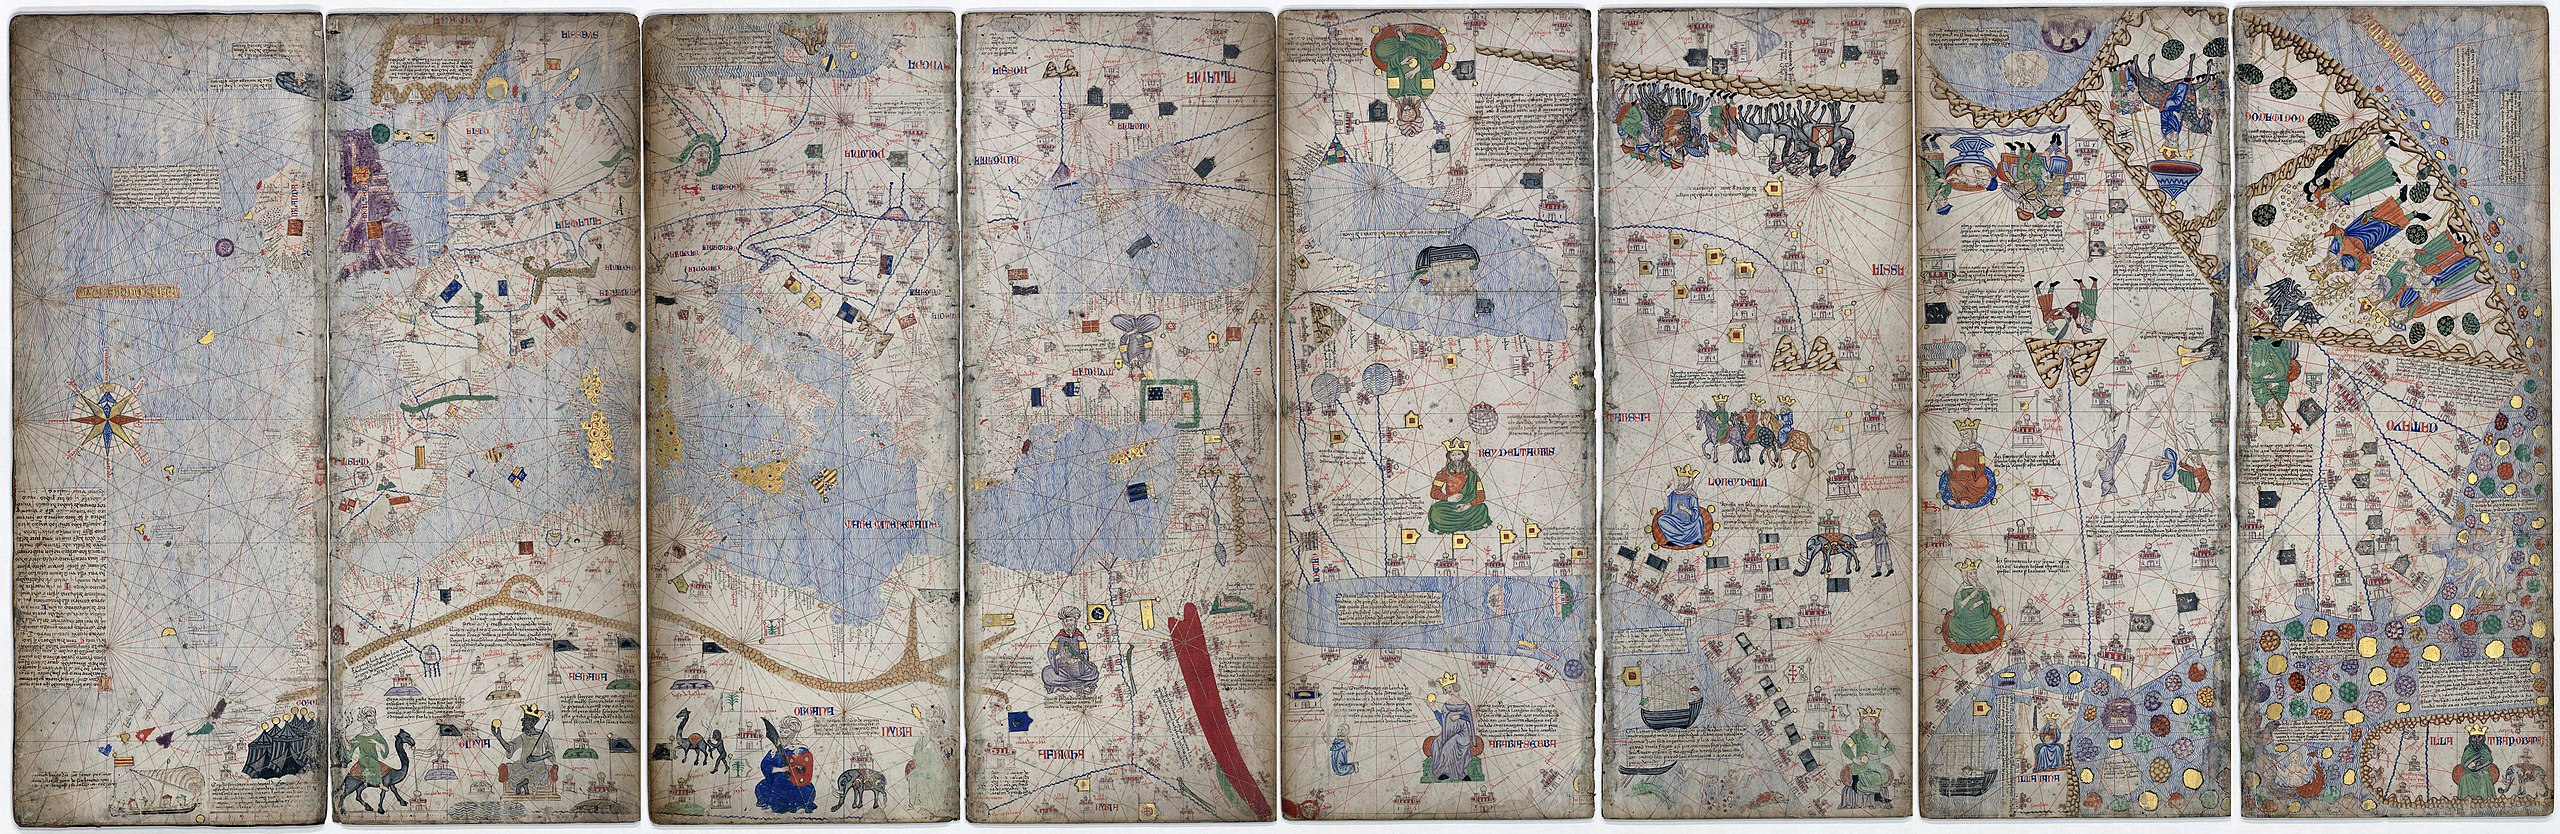 Medieval Maps and Mapping Resources